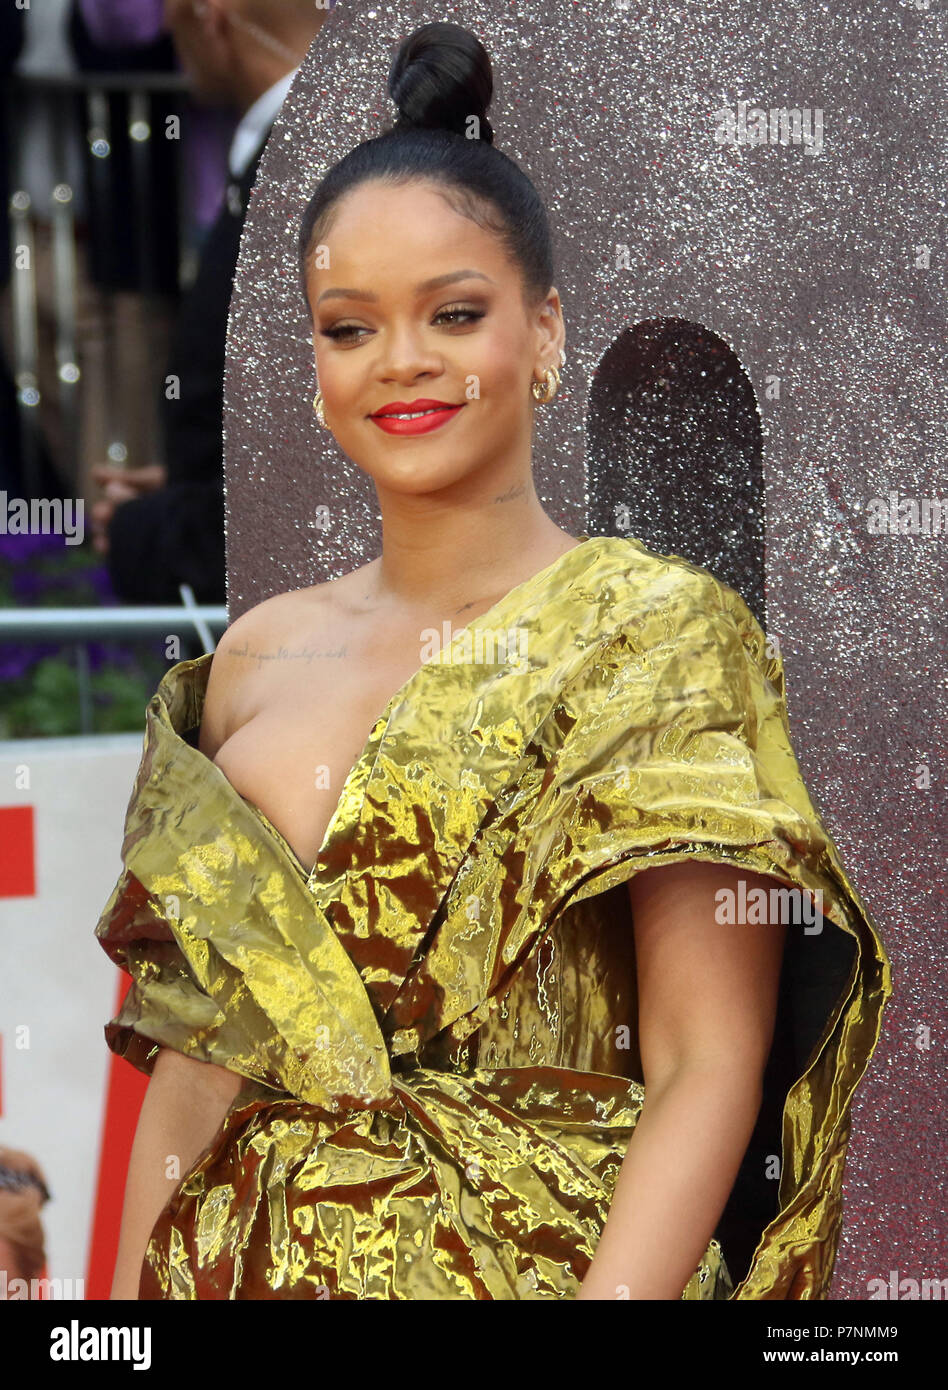 Jun 13, 2018 - Rihanna assistant à Ocean's 8 Première européenne, de Leicester Square, au Cineworld London, England, UK Photo Stock